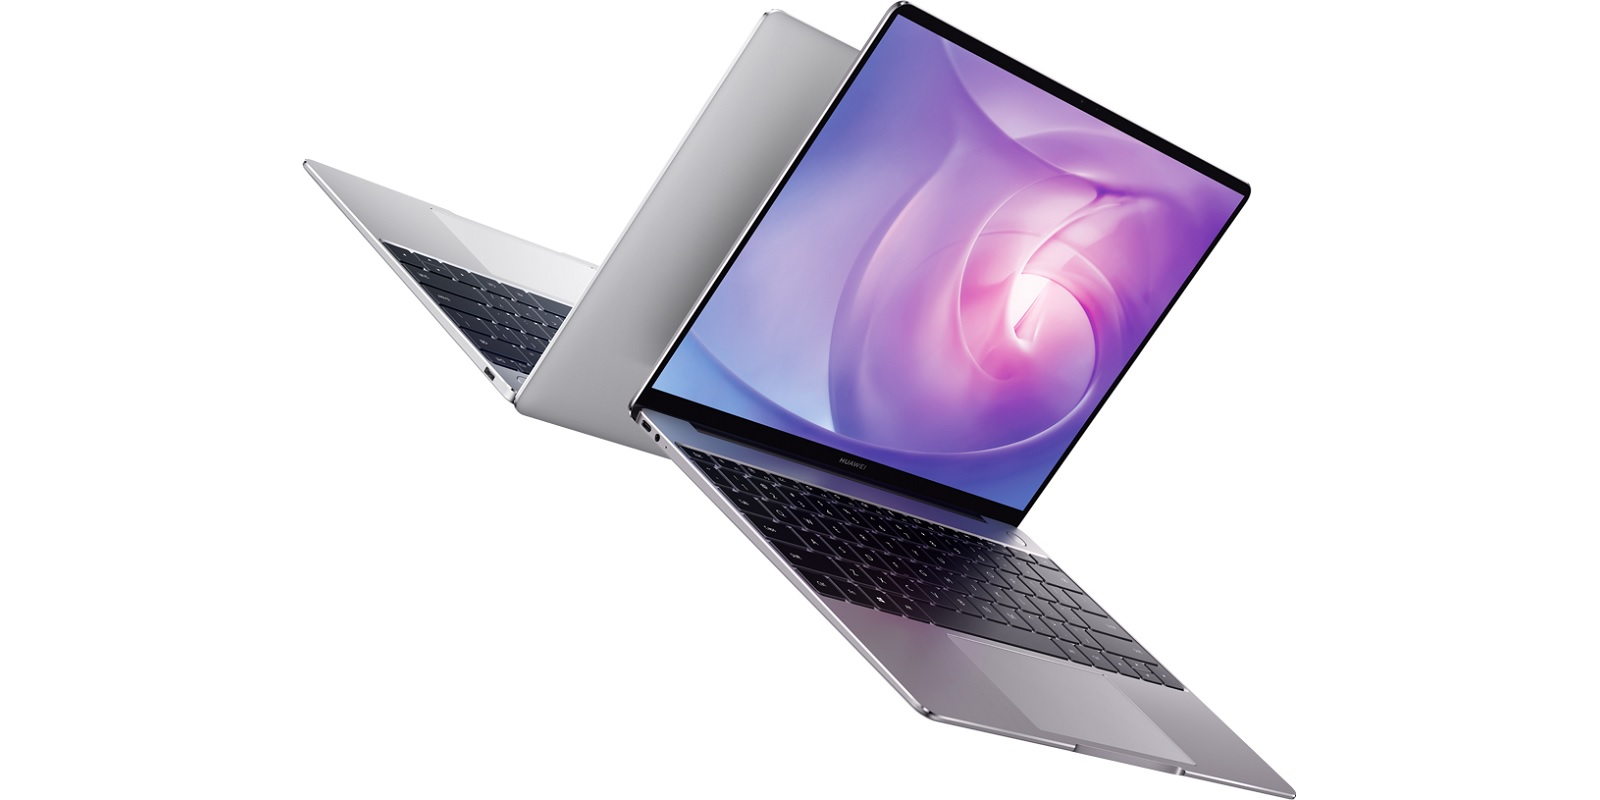 Huawei MateBook 13 2020 AMD Ryzen 4000 laptop